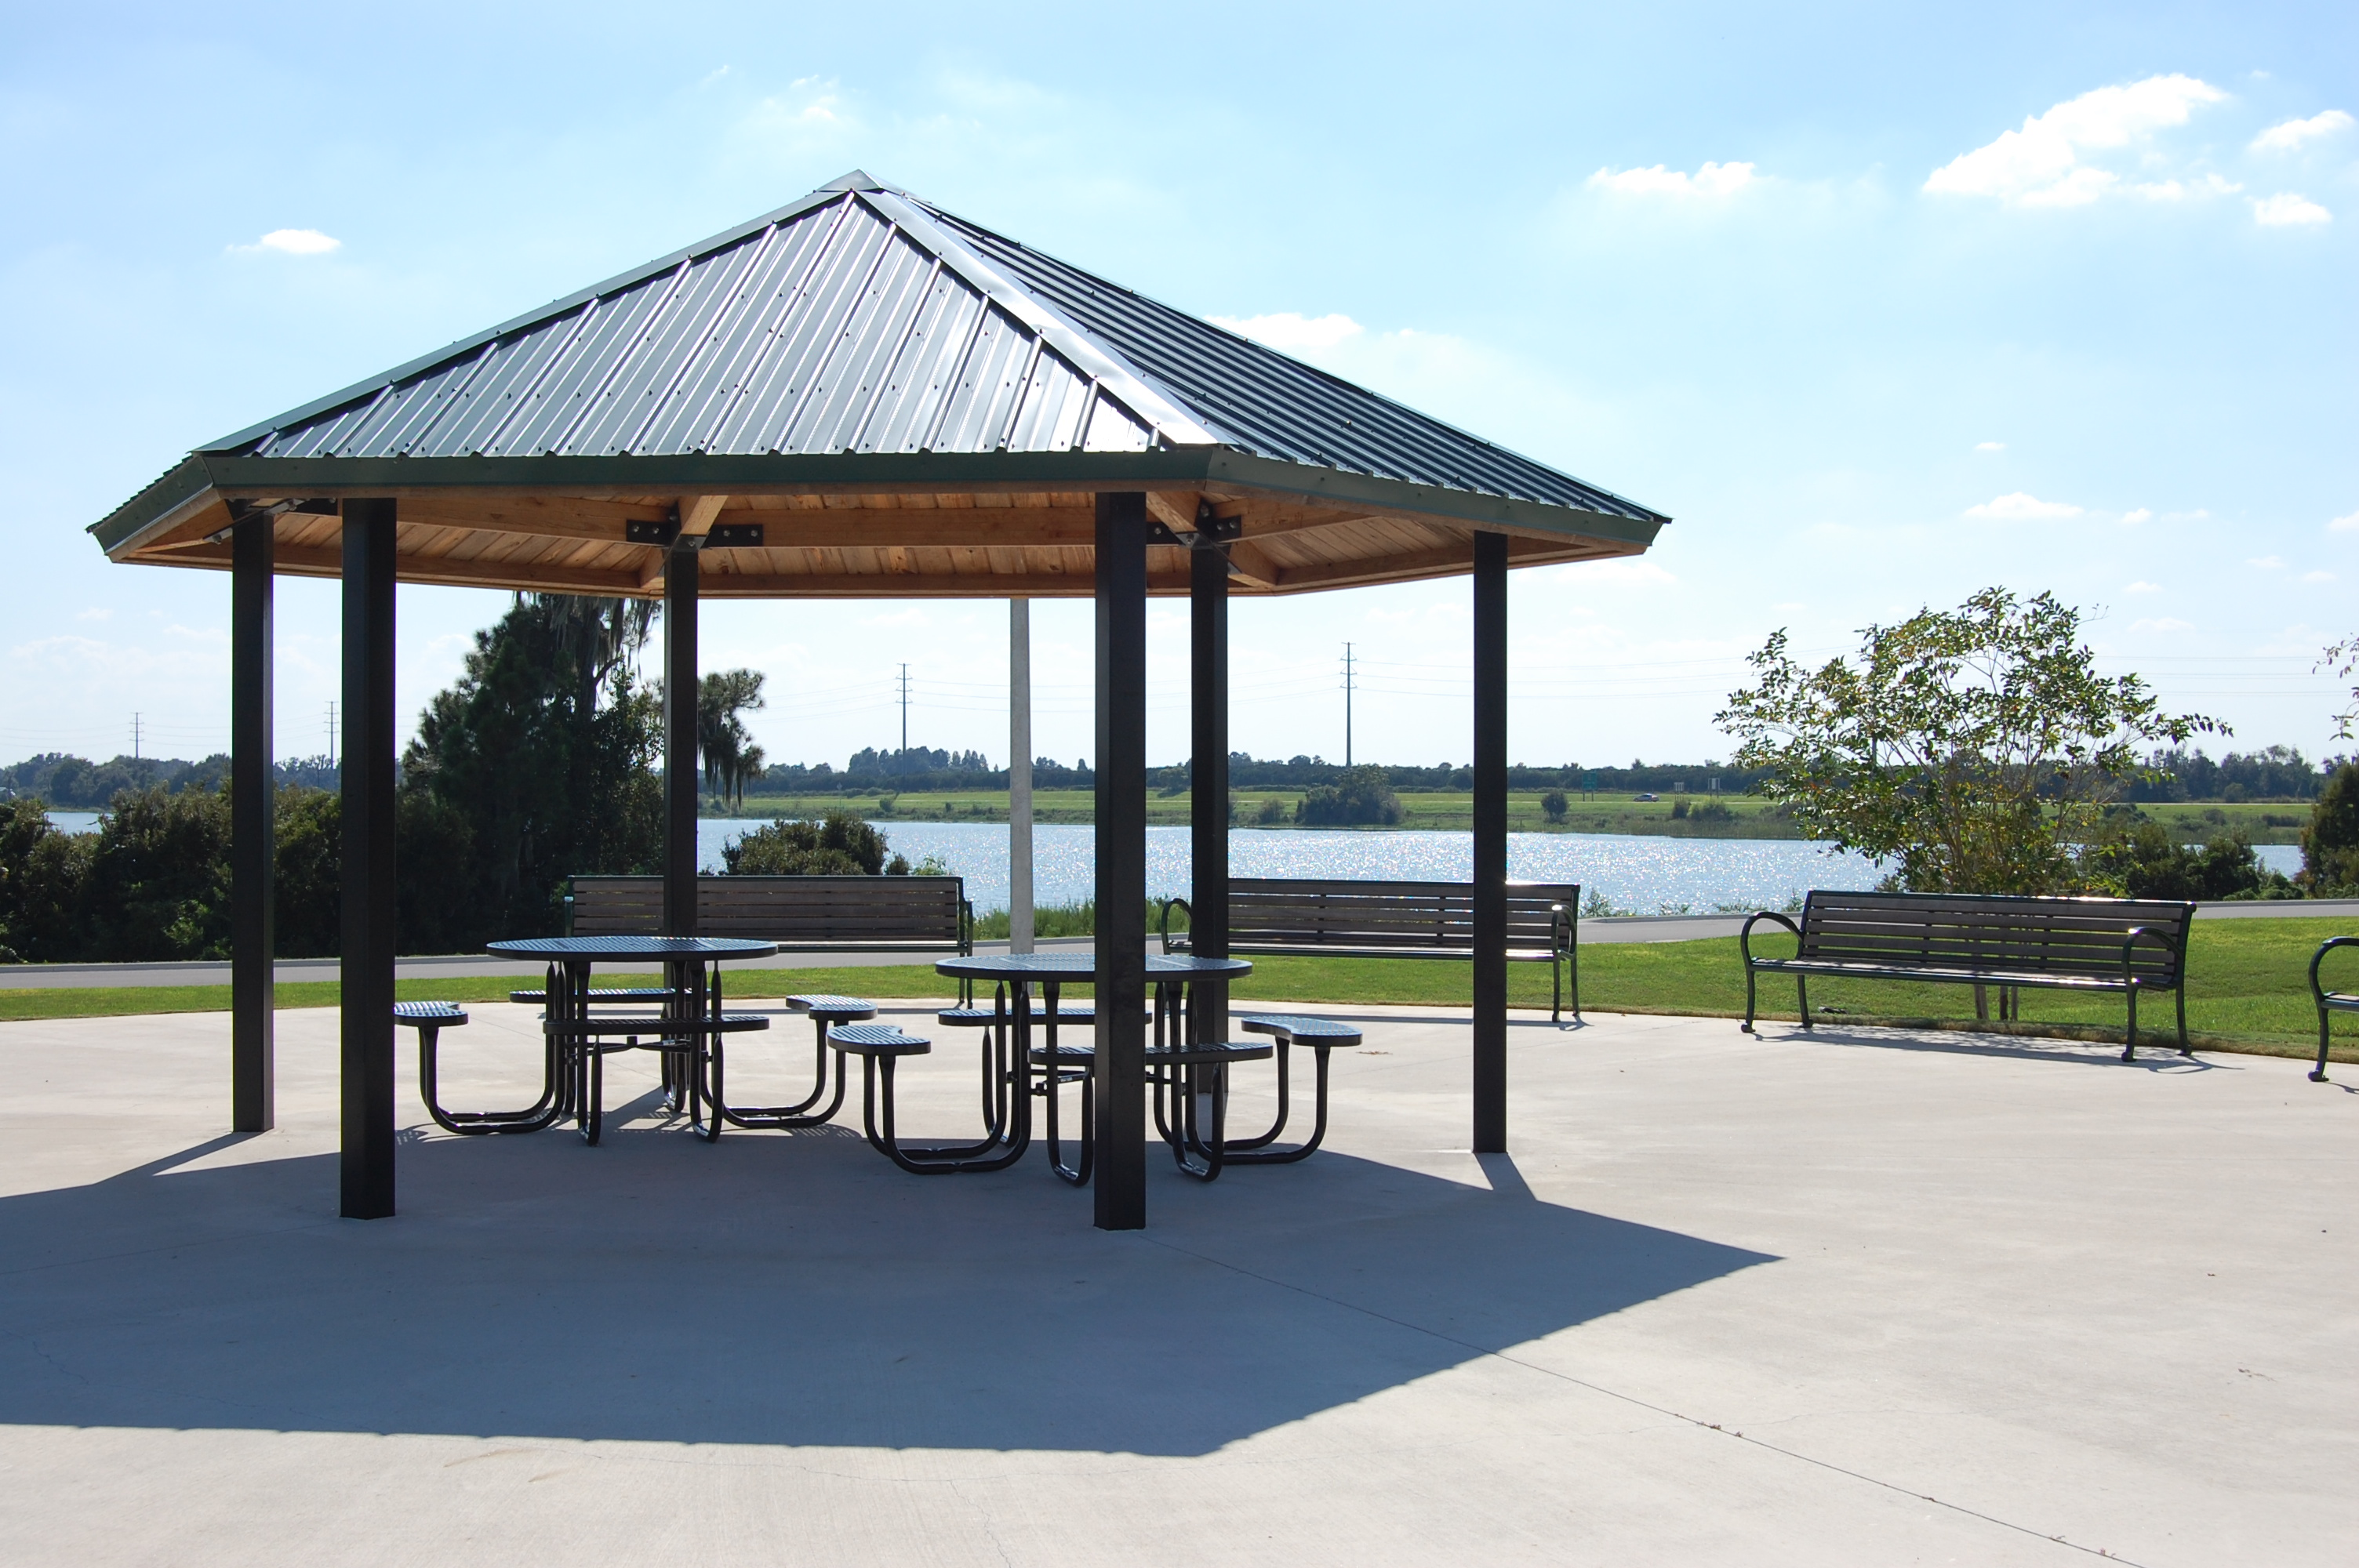 A picnic pavilion at Lake Myrtle Sports Park